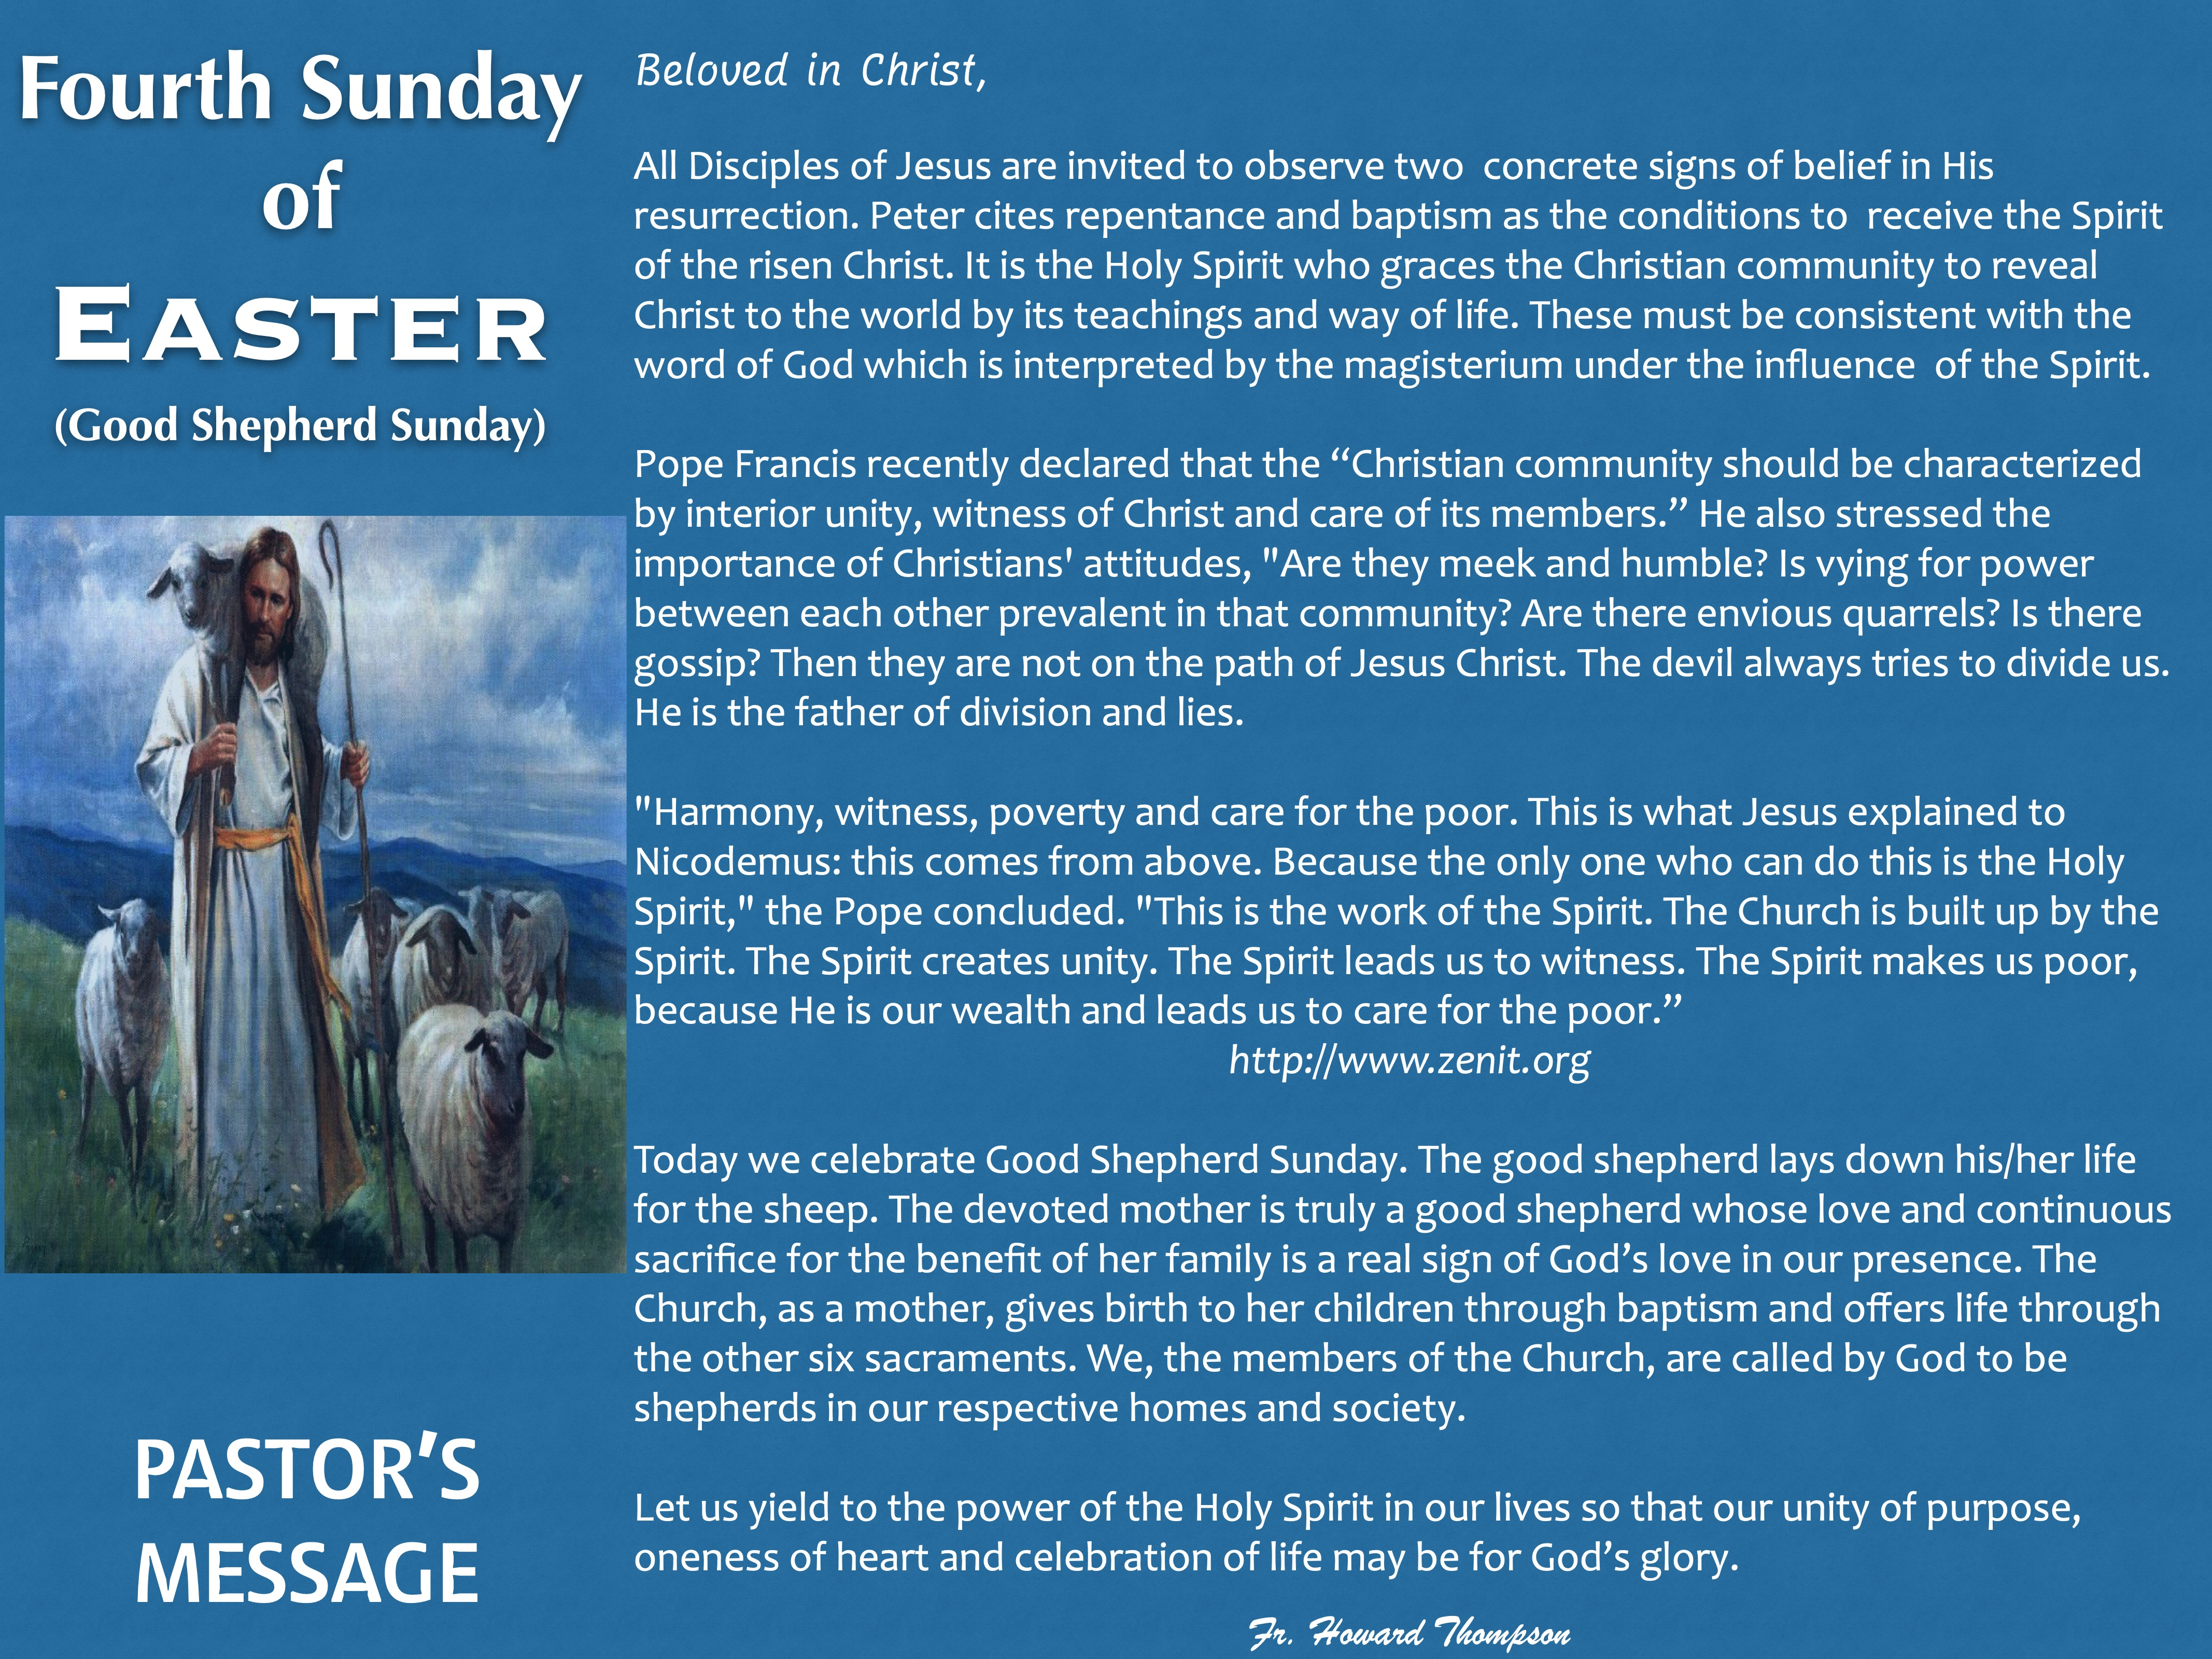 Pastor's Message - 111 Fourth Sunday of